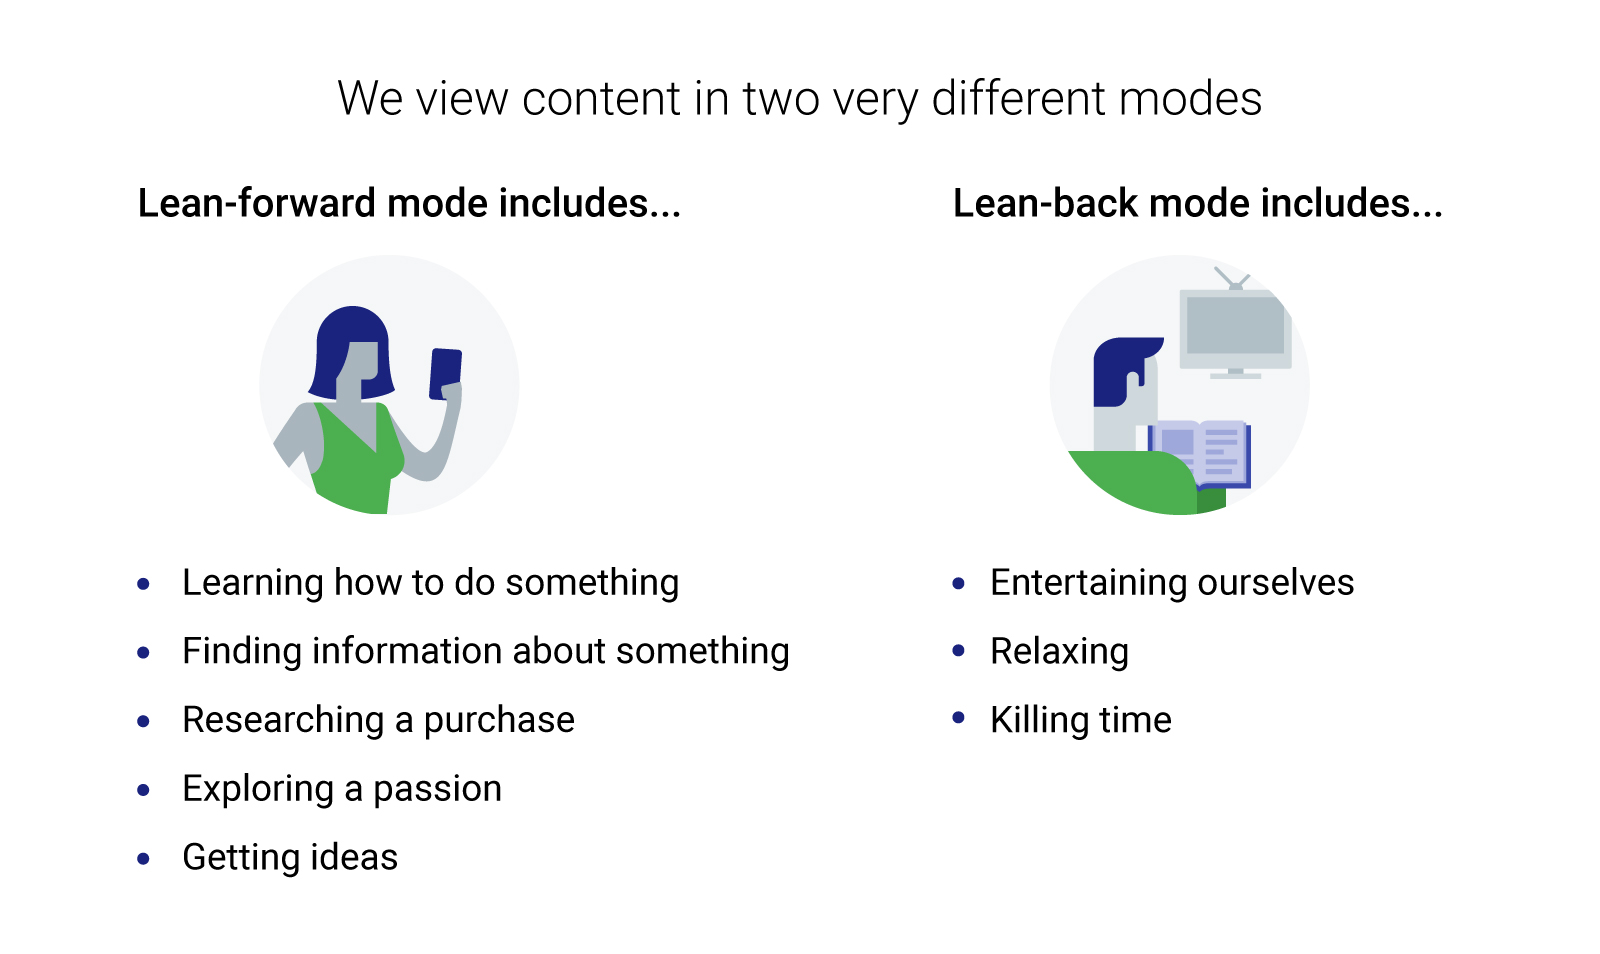 Lean in mode: Learning how to do something, finding info, researching a purchase, exploring a passion, getting ideas. Lean back mode: Entertaining ourselves, relaxing, killing time